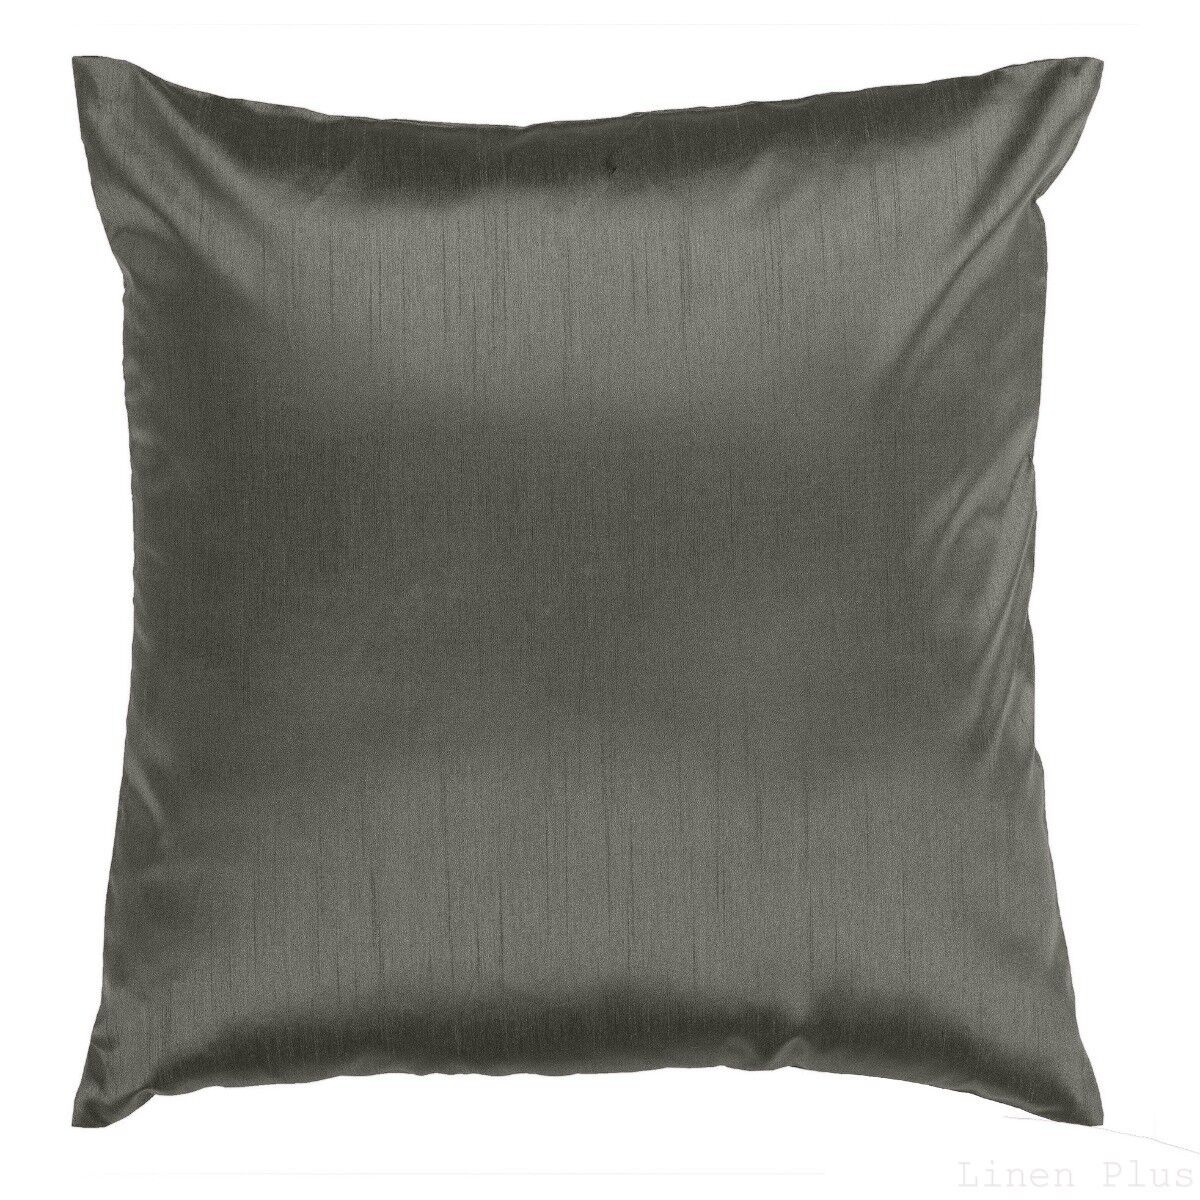 Solid Gray Cover Case Decorative Pillow Zippered Closure 18″ x 18″ 2 Piece Bedding